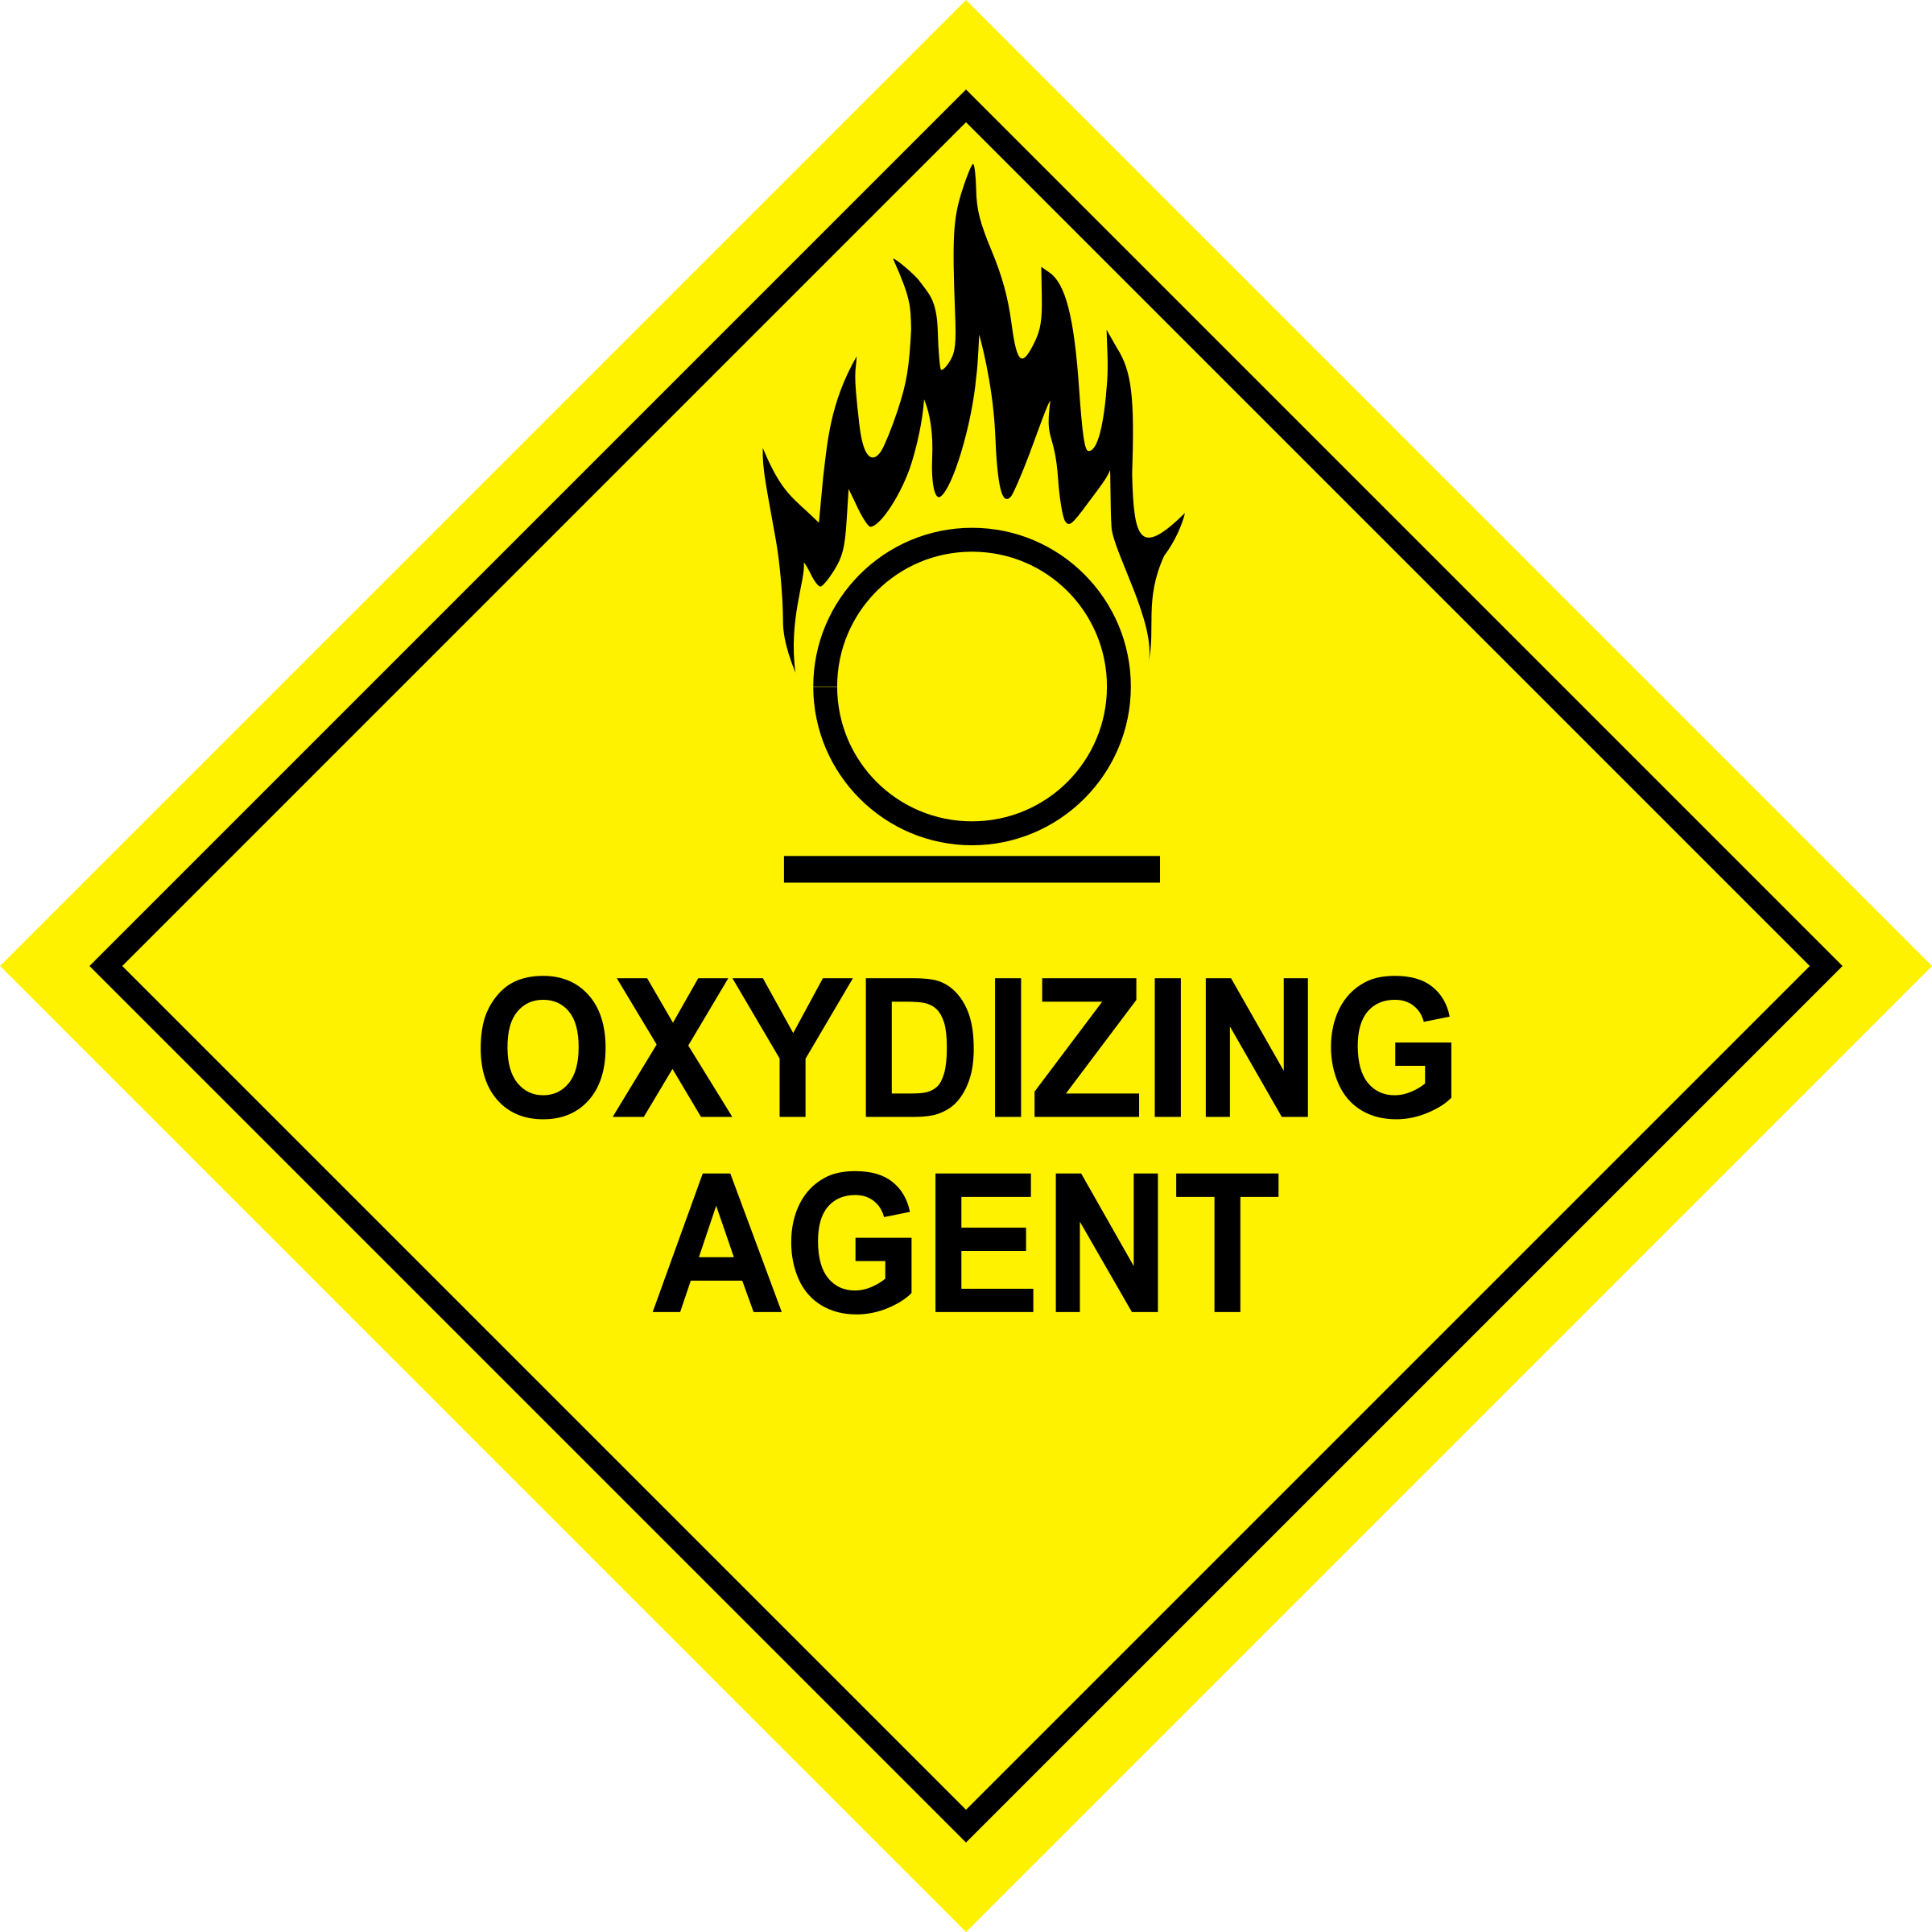 Why is something dangerous if it's an oxidizing agent?.